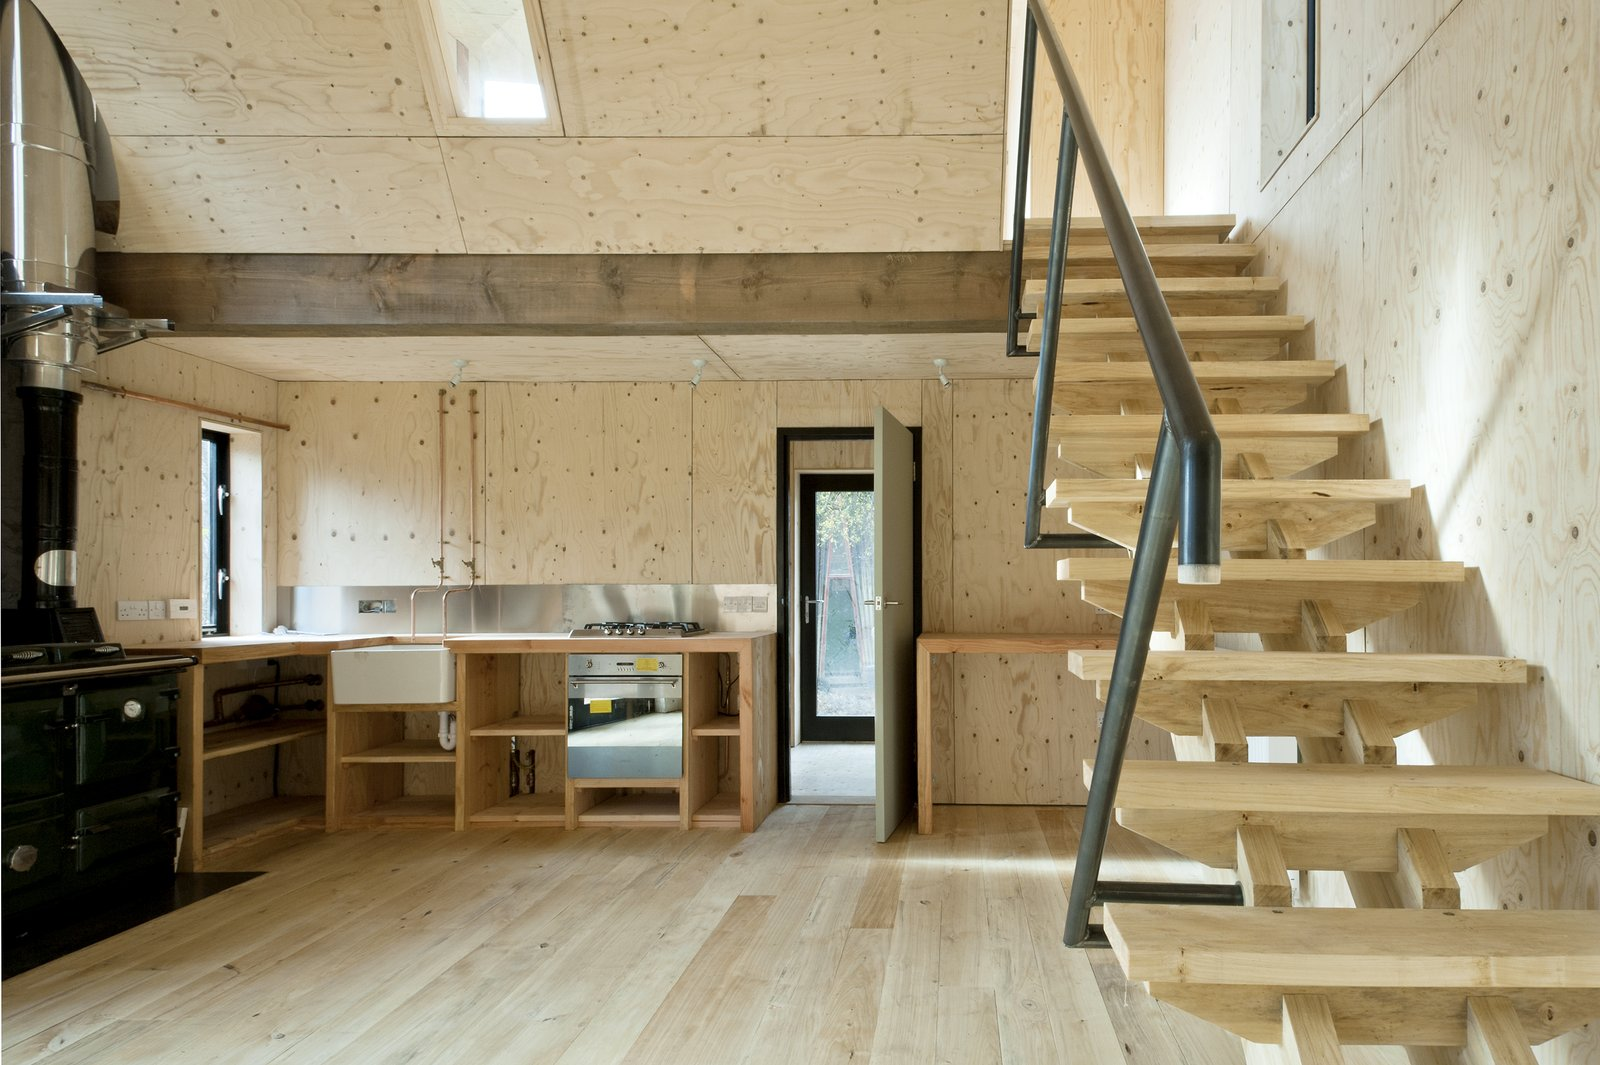 The construction process was super-efficient, even the joinery was manufactured on site. The kitchen (which uses exposed copper piping for taps) has chunky timber worktops, and the stairs use an innovative dry jointed system that gains strength as the timber dries. The handrail is made of mild steel bent piping, which was also welded on site.